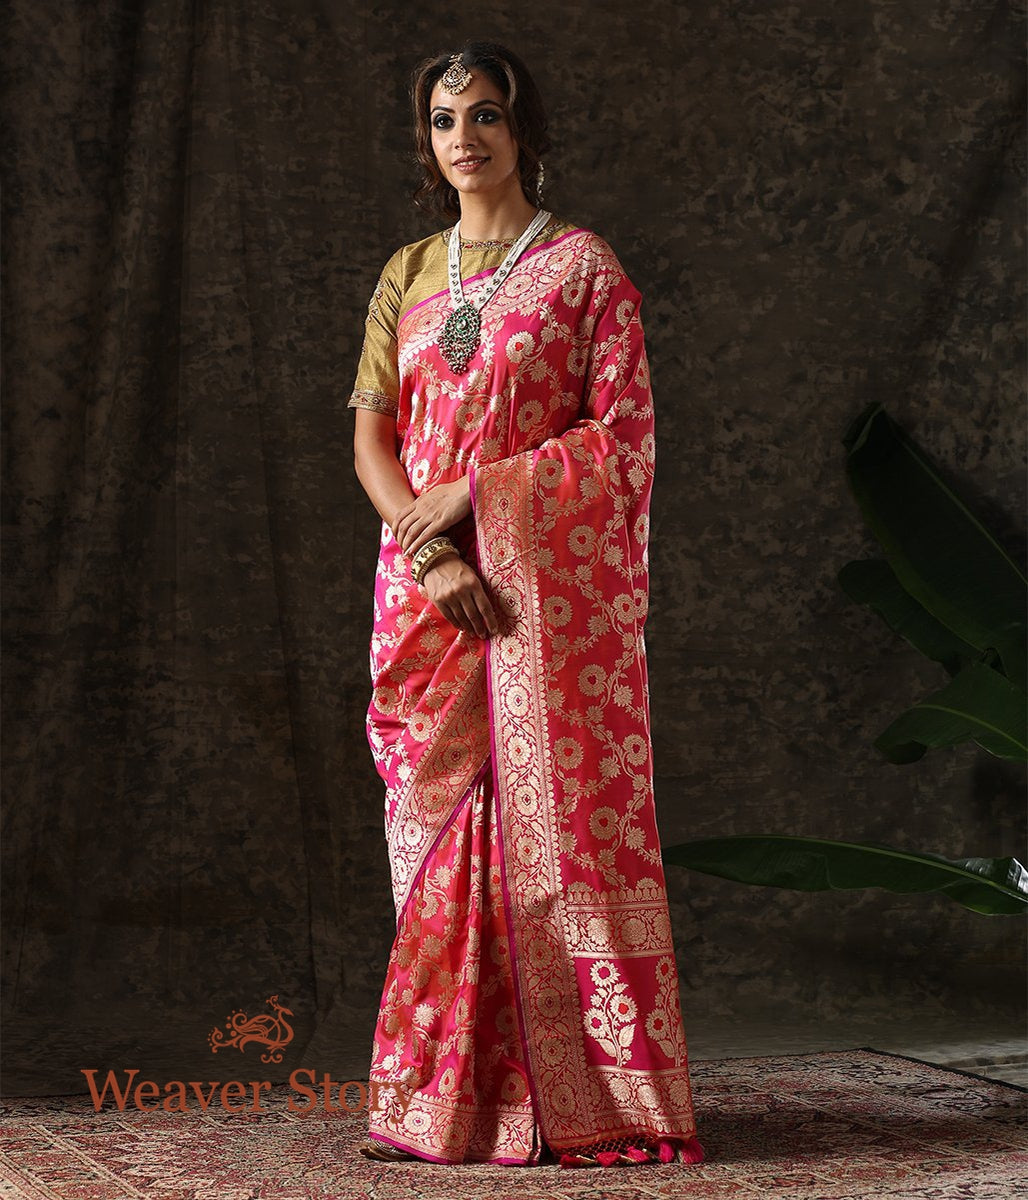 Handwoven Pink Orange Shot Color Meenakari Jangla Saree